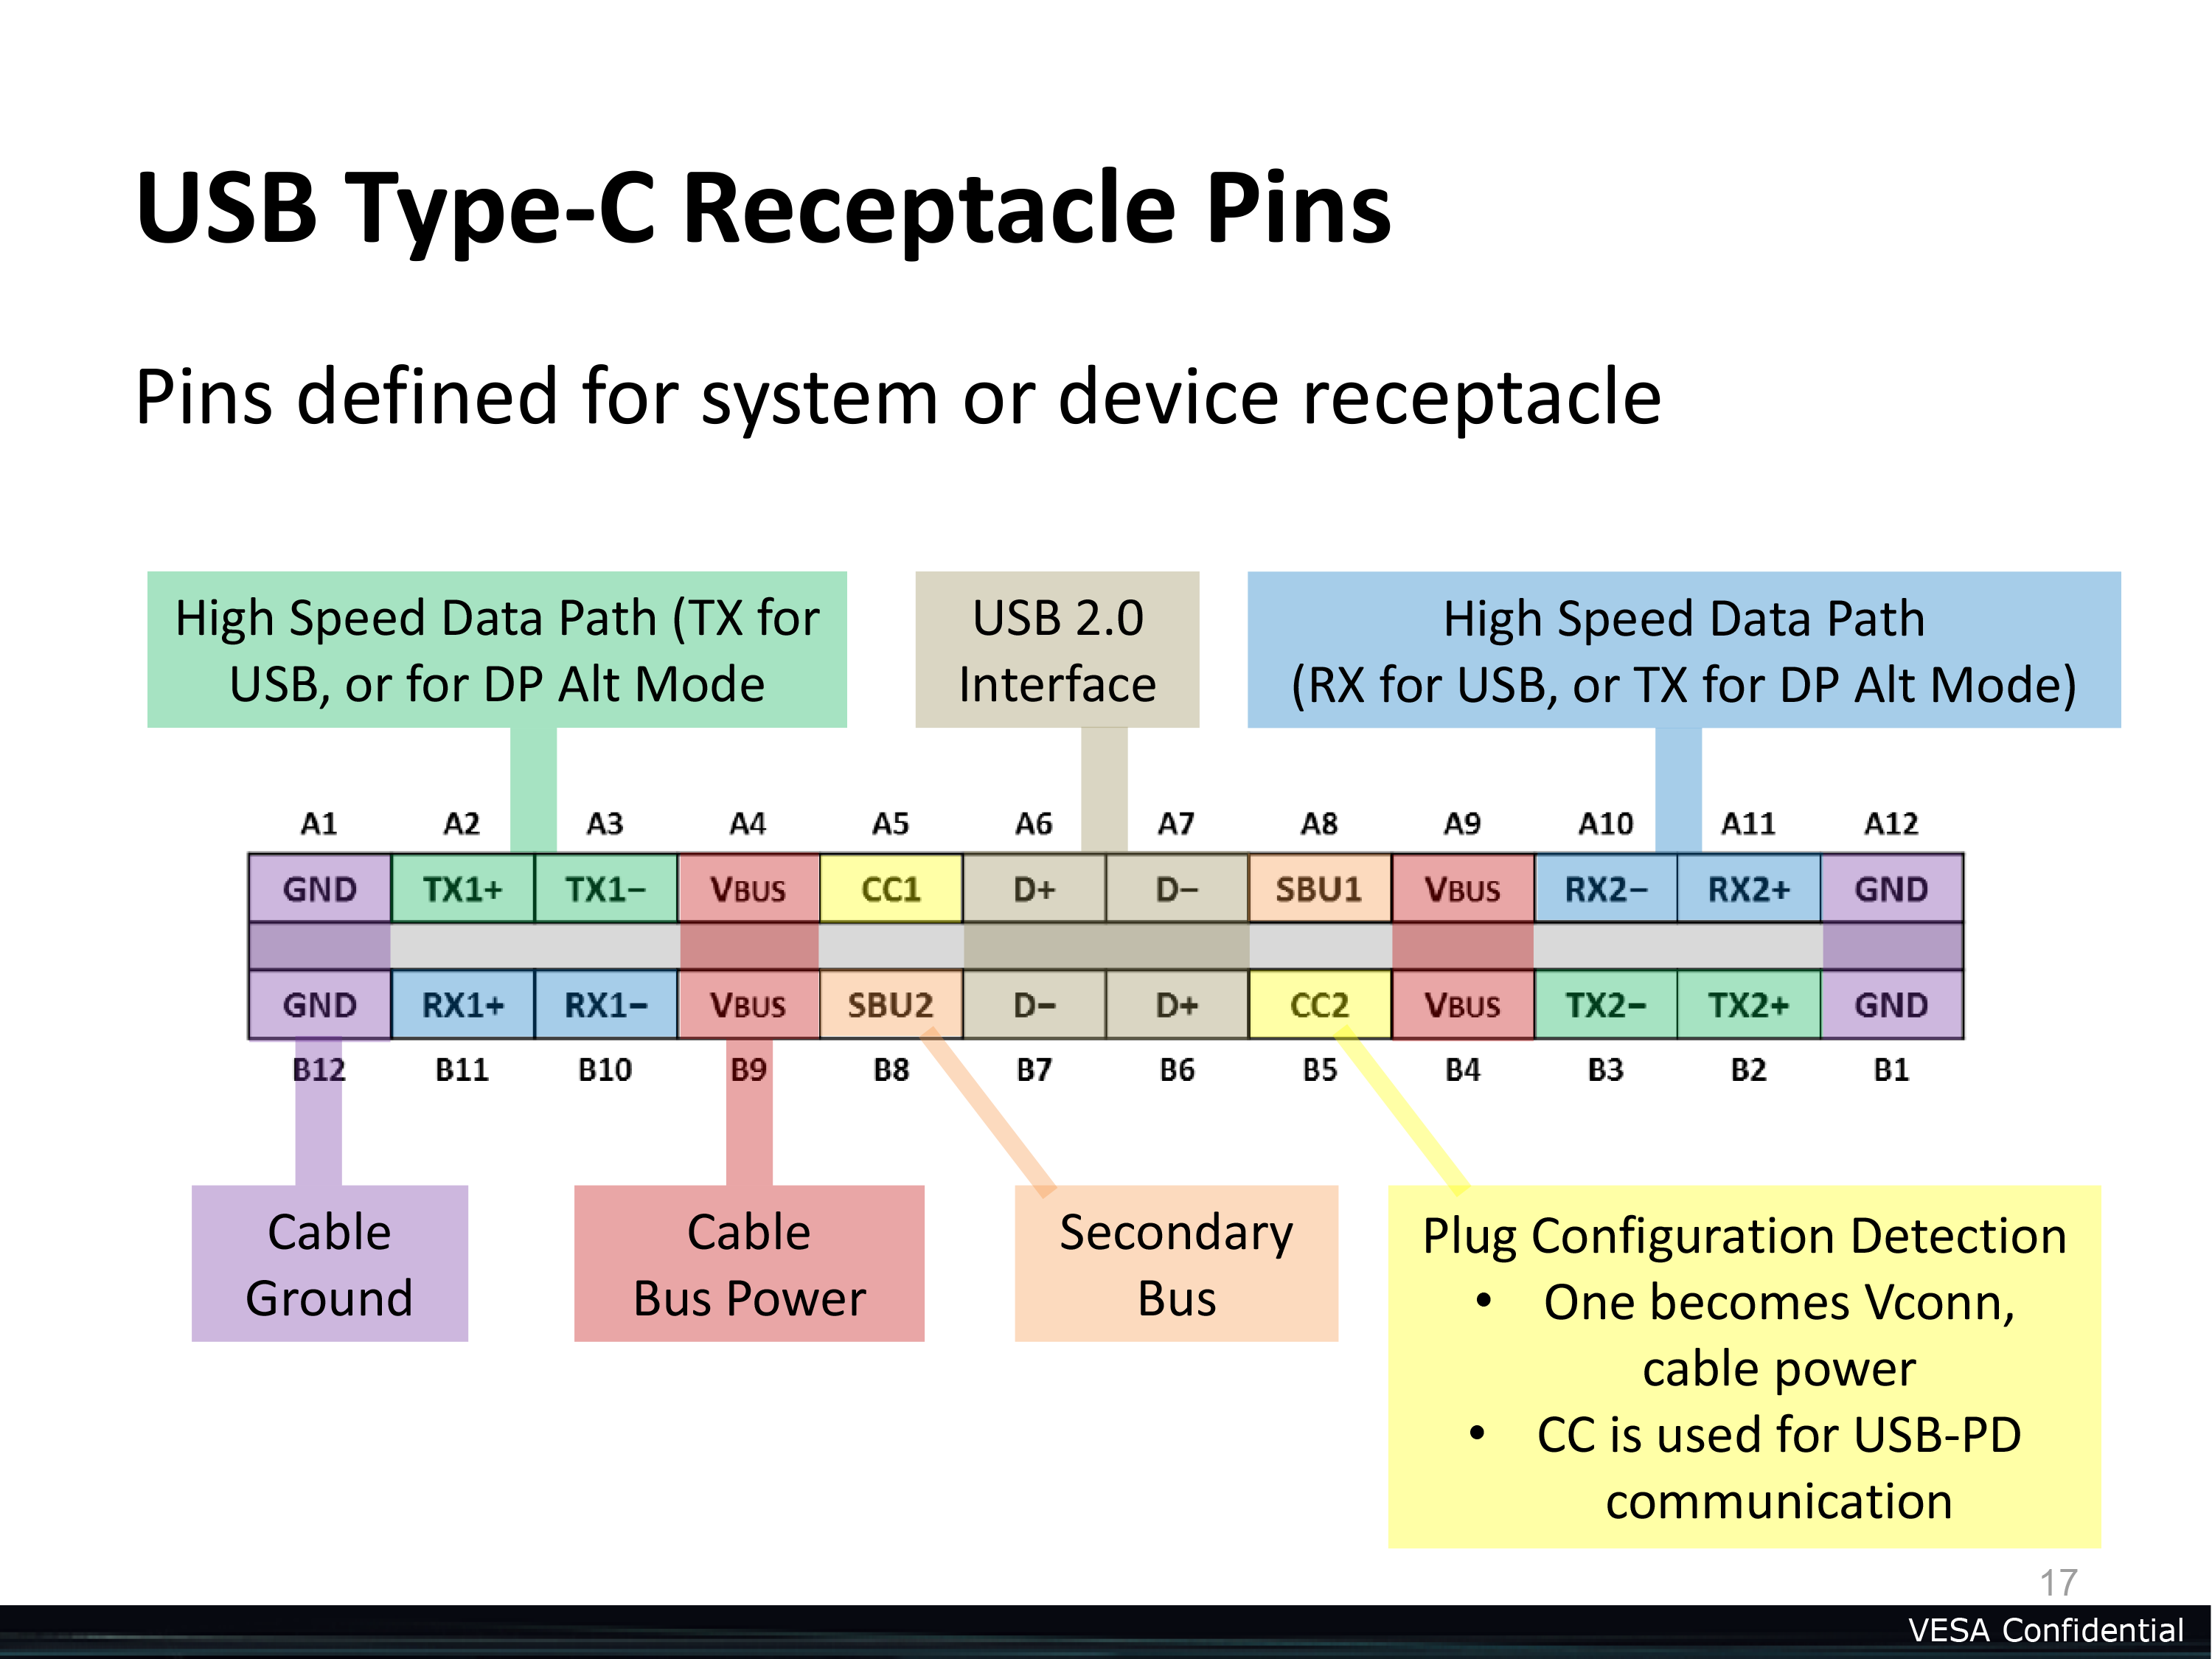 The pin layout of a USB Type-C cable. Eight pins are dedicated to driving four high-speed lanes that can be used for USB 3.1 or other protocols. Others are dedicated to power and legacy USB 2.0.